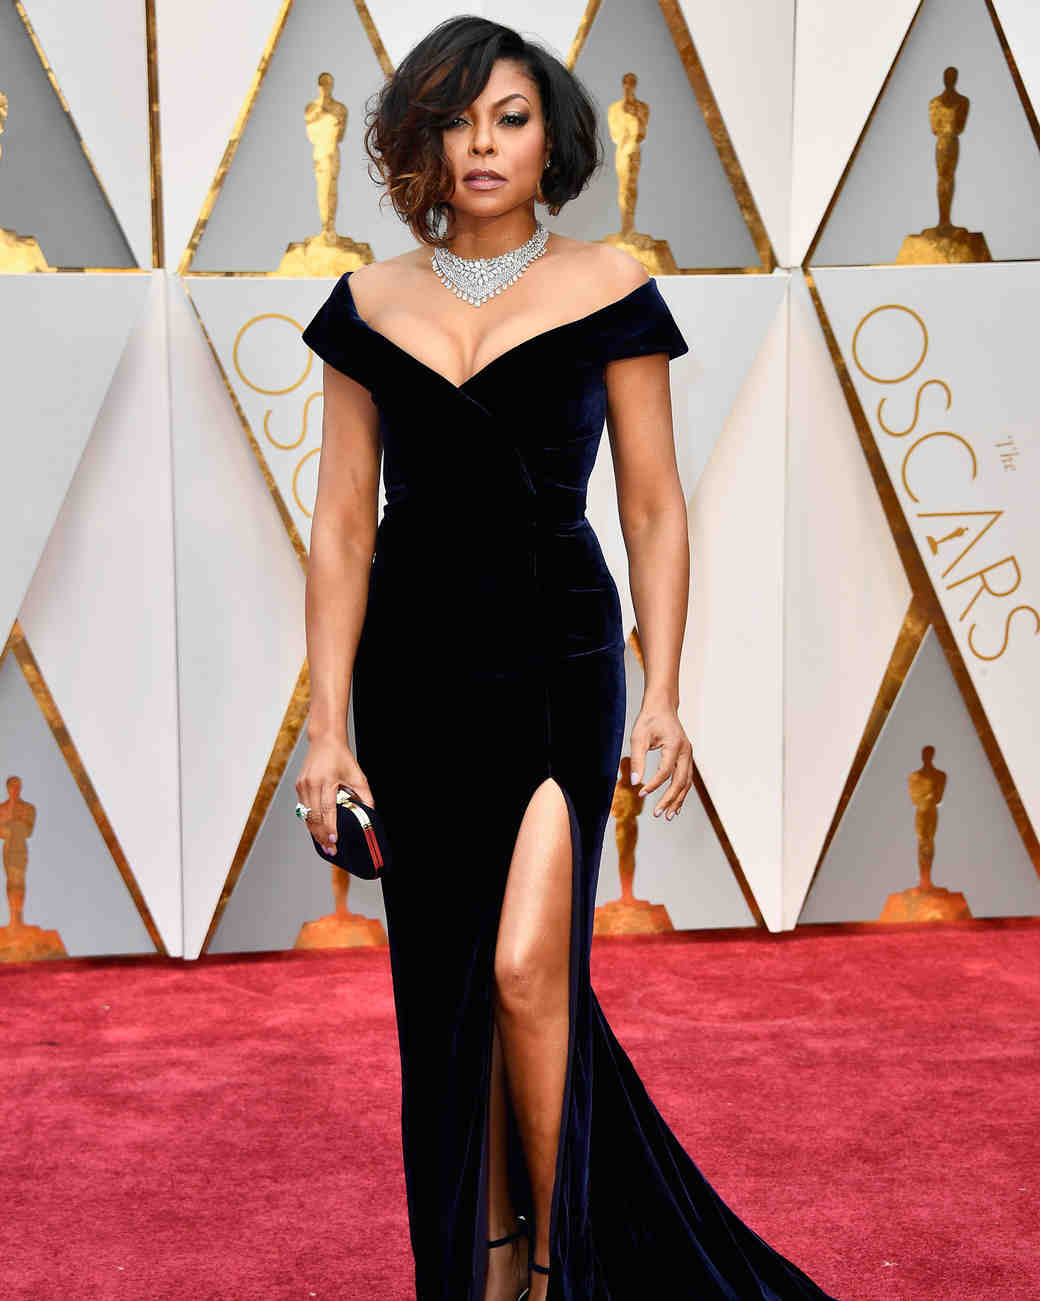 Oscars 2017 Red Carpet Dresses You Could Wear On Your